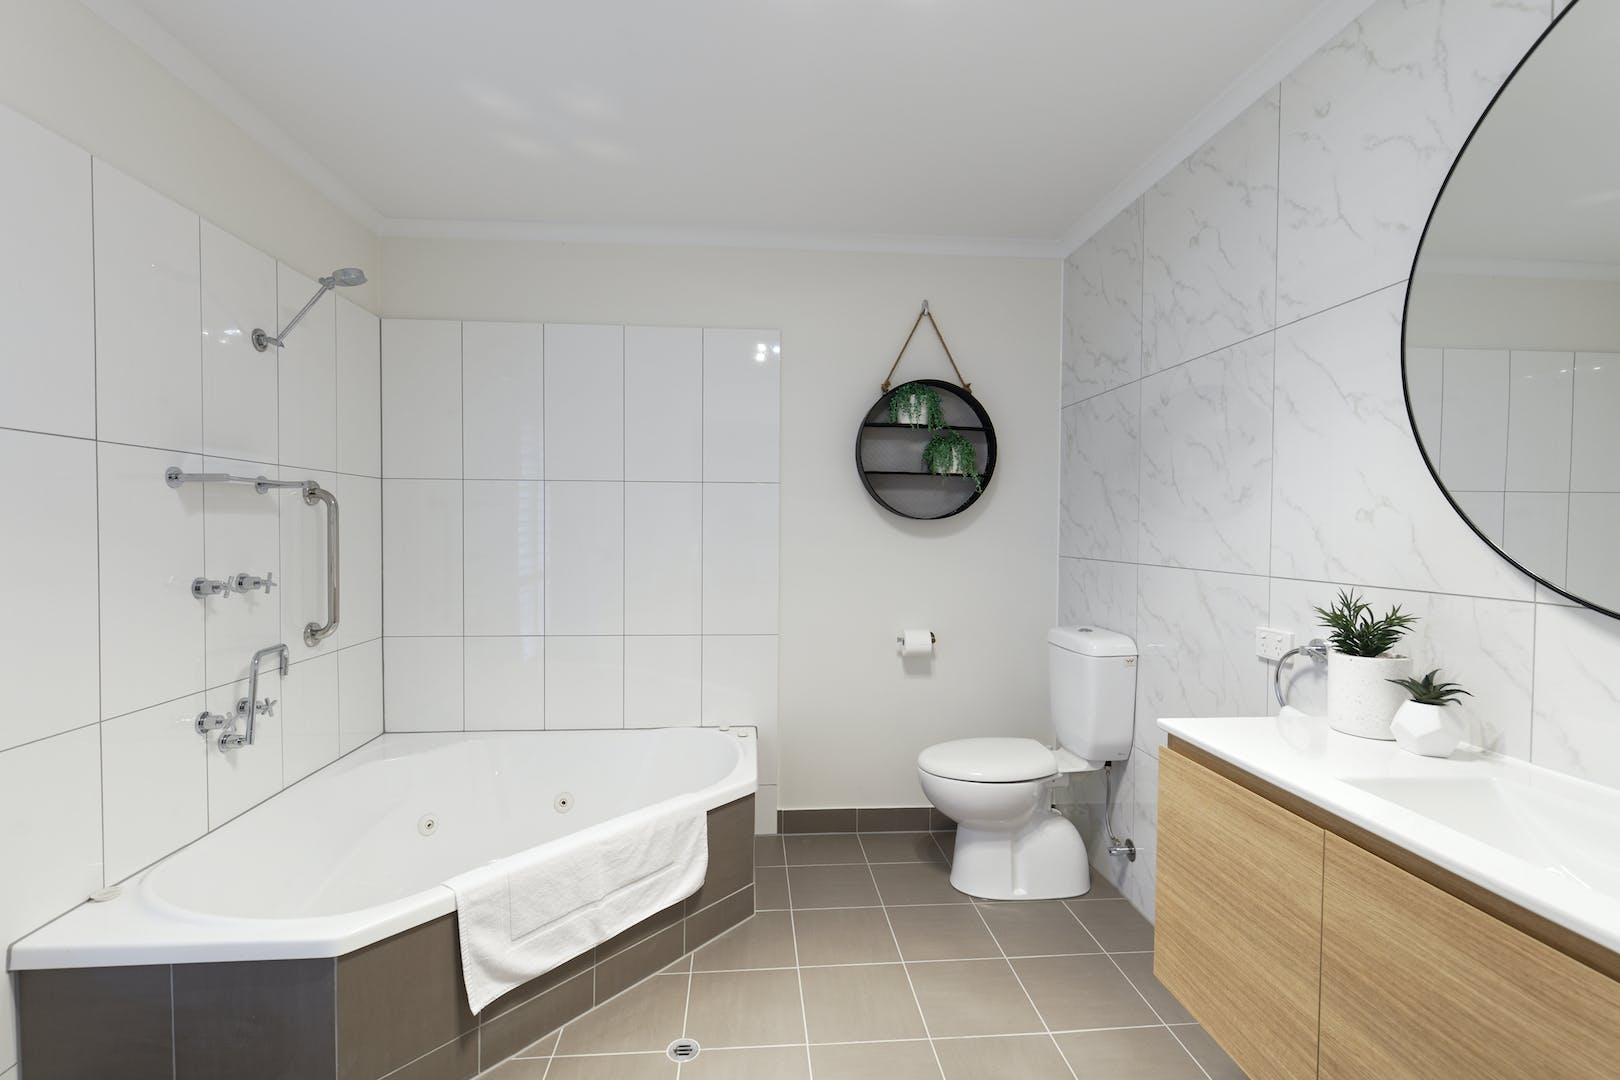 Inverloch accommodation The Sandy Mount spa bathroom Room 5